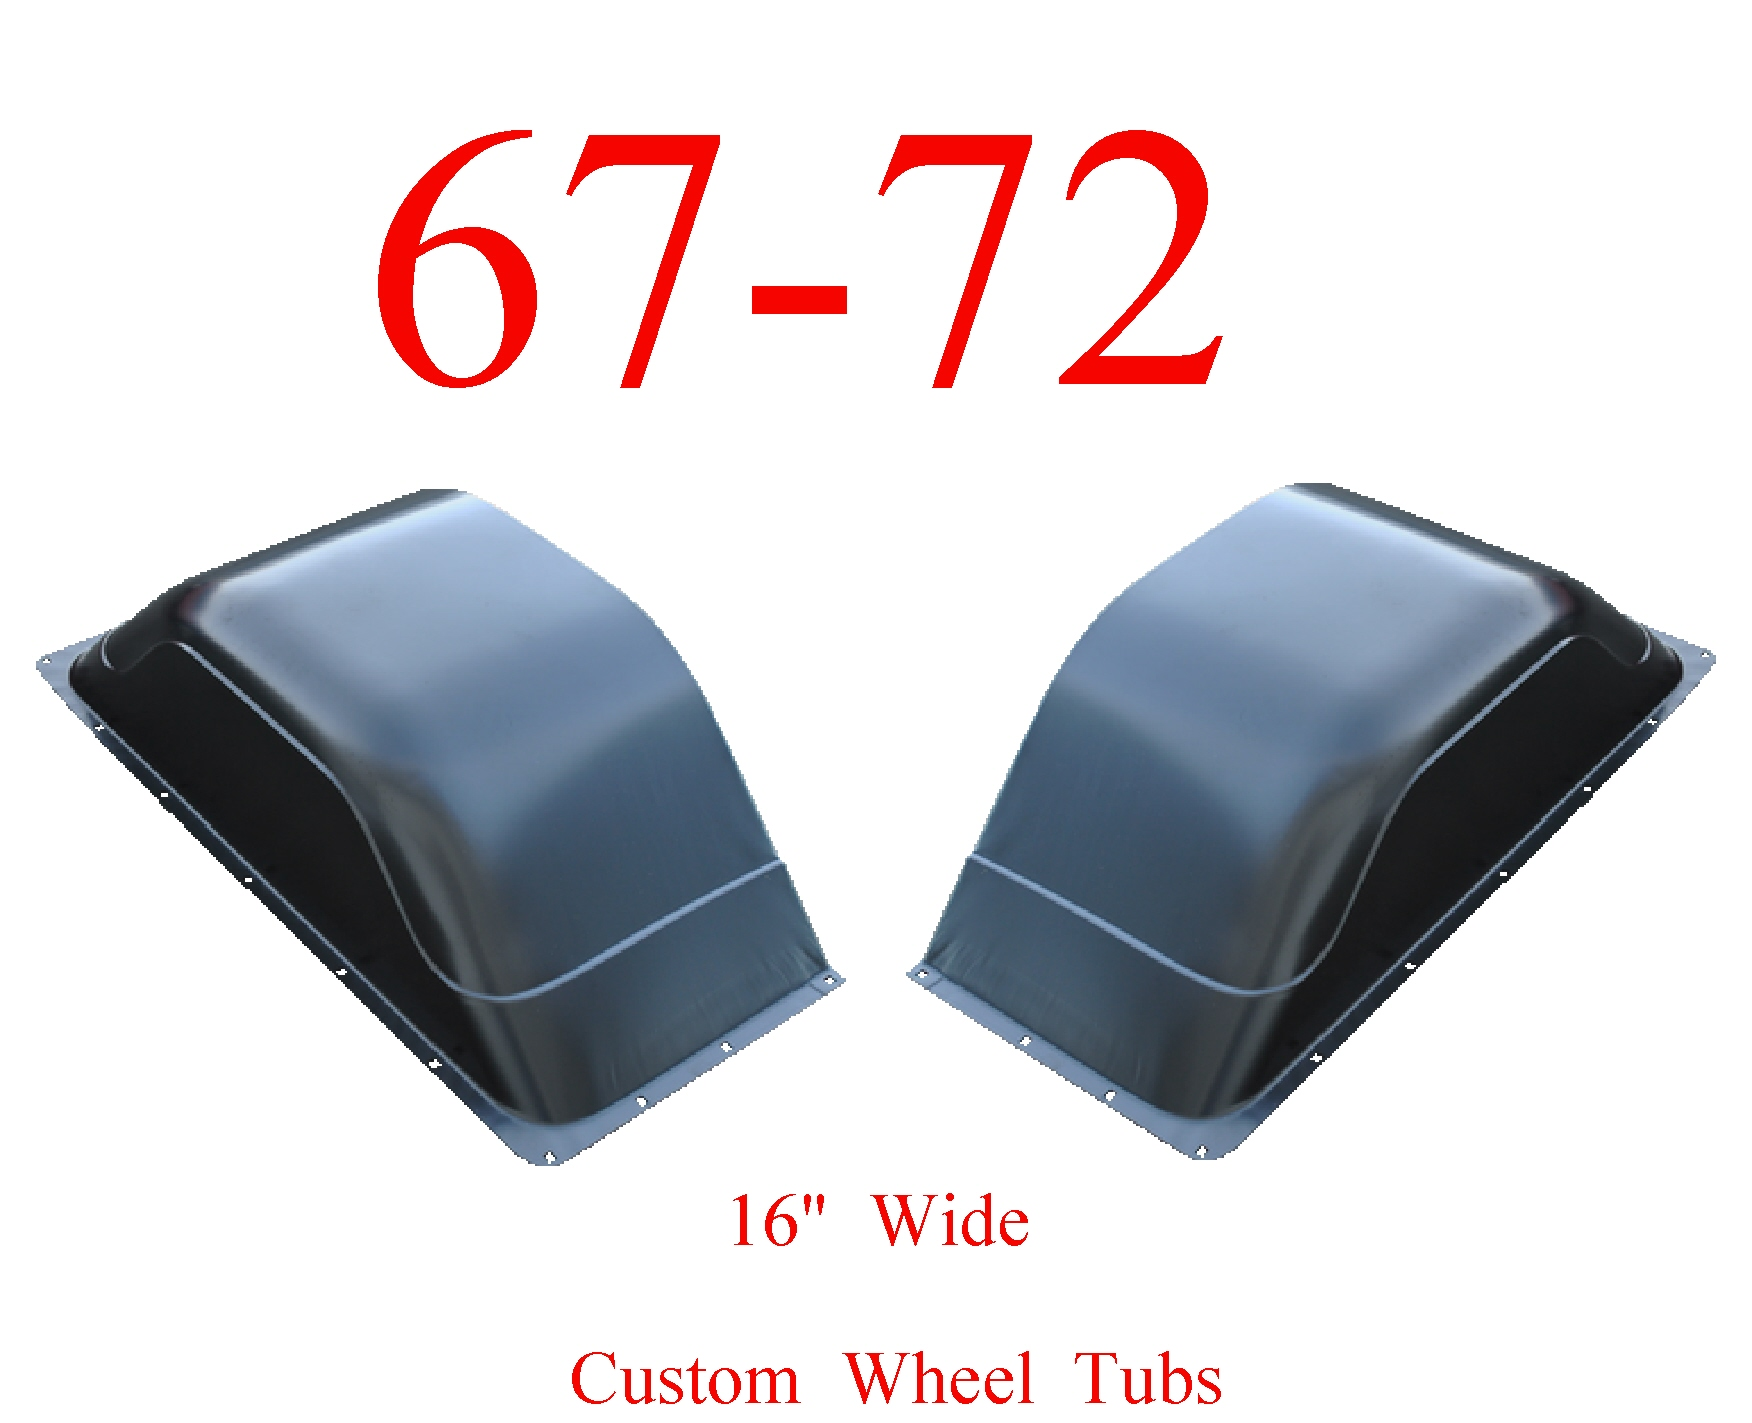 "67-72 Chevy Custom Wide Wheel Tubs 16"" Set Of 2"